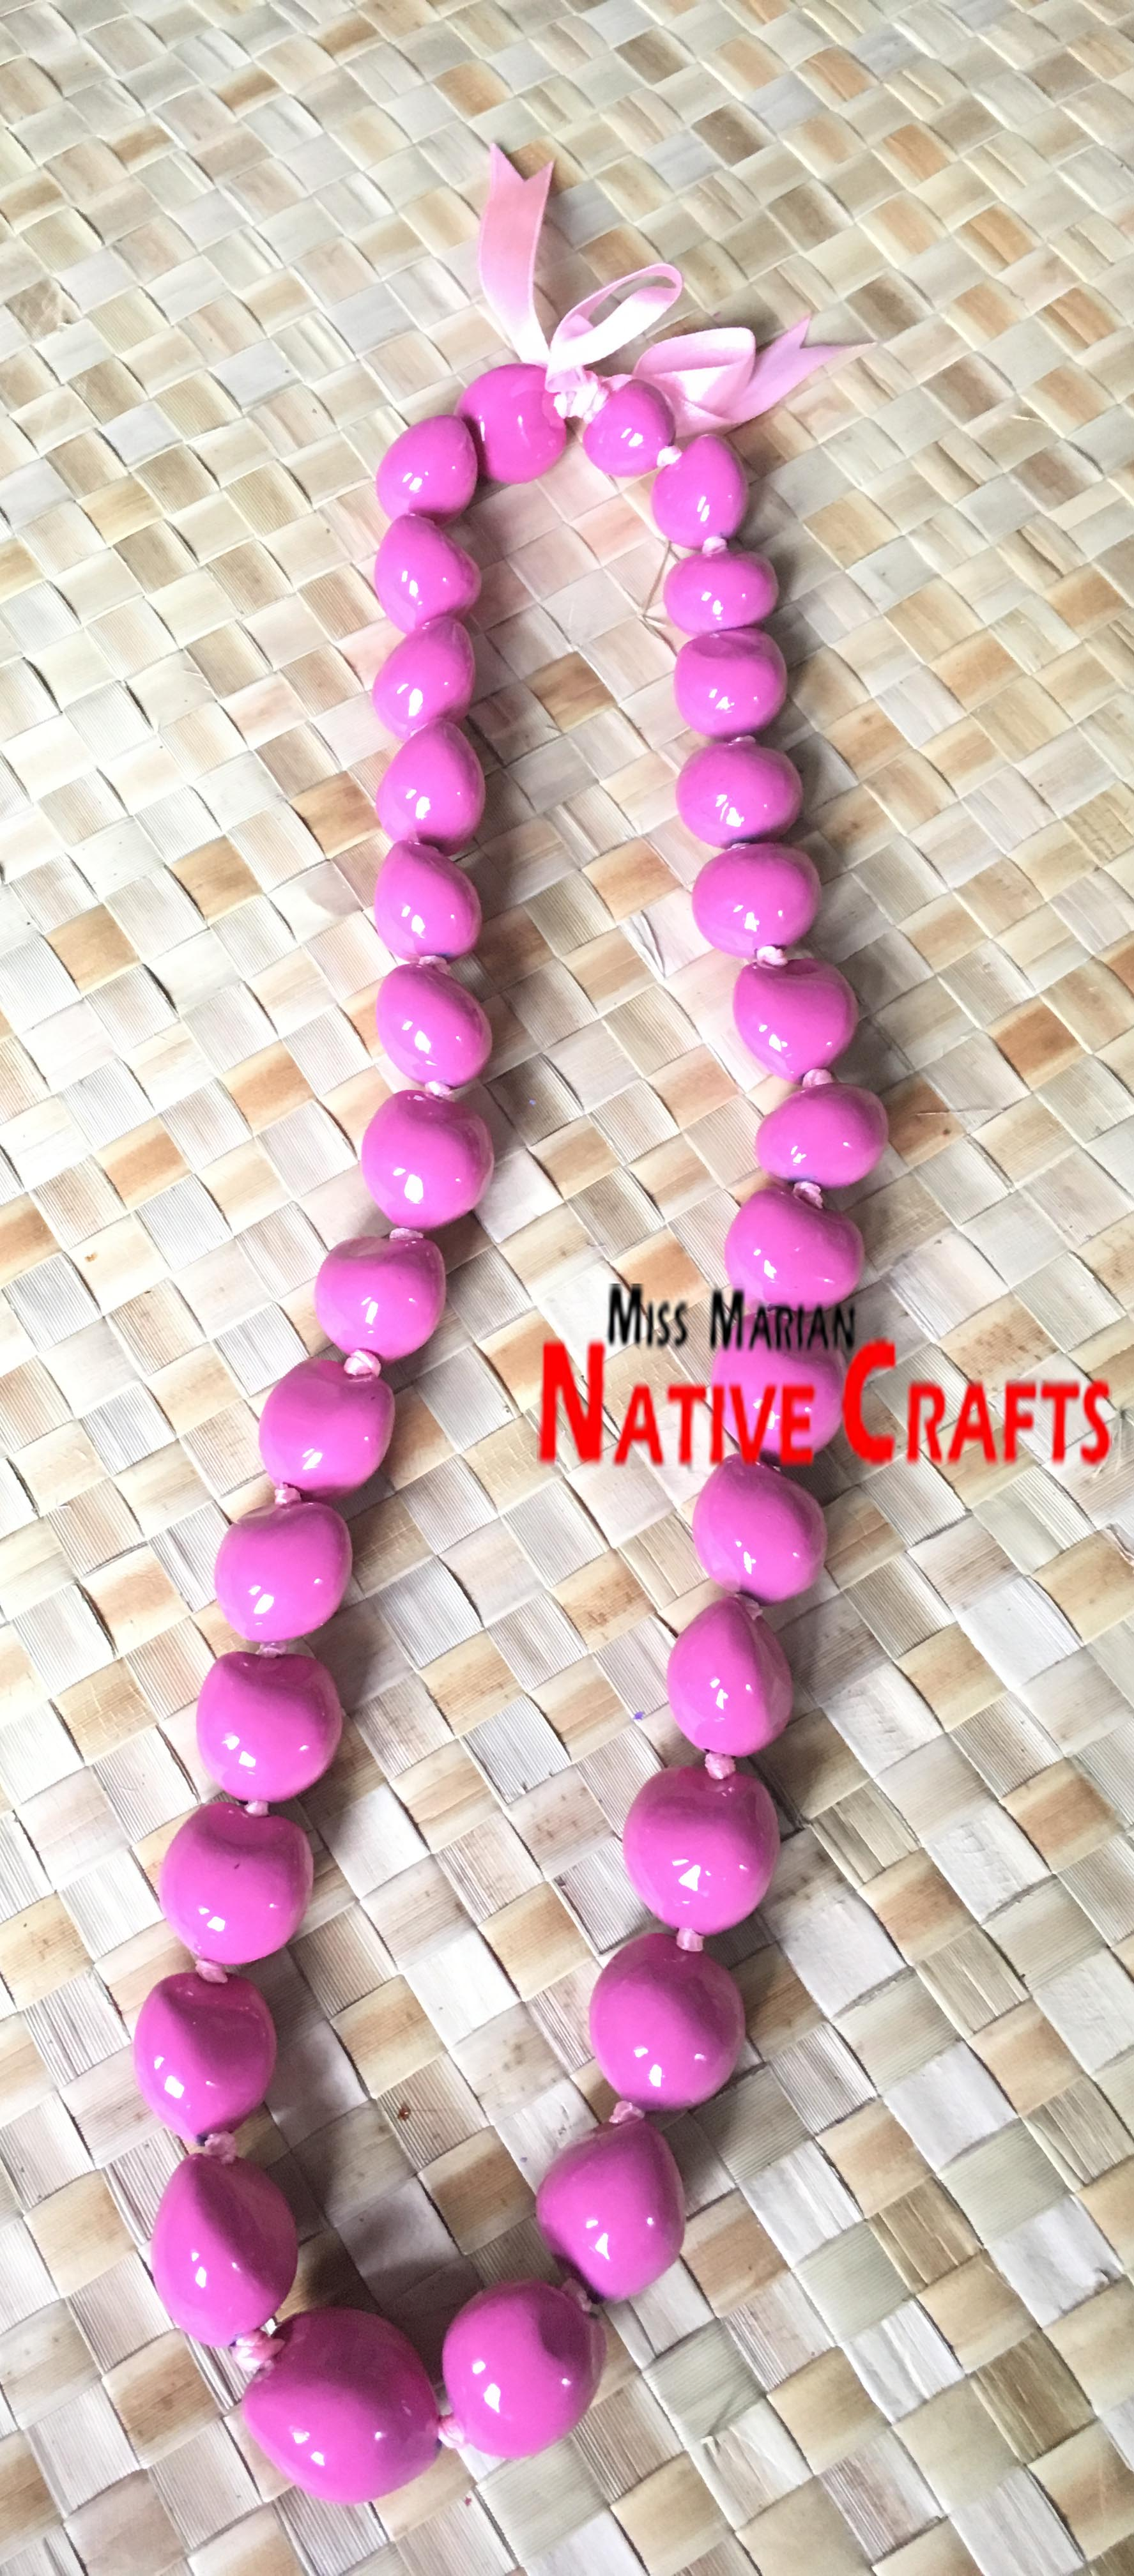 Light Pink Hawaiian Kukui Nuts Leis, Kukui Nuts